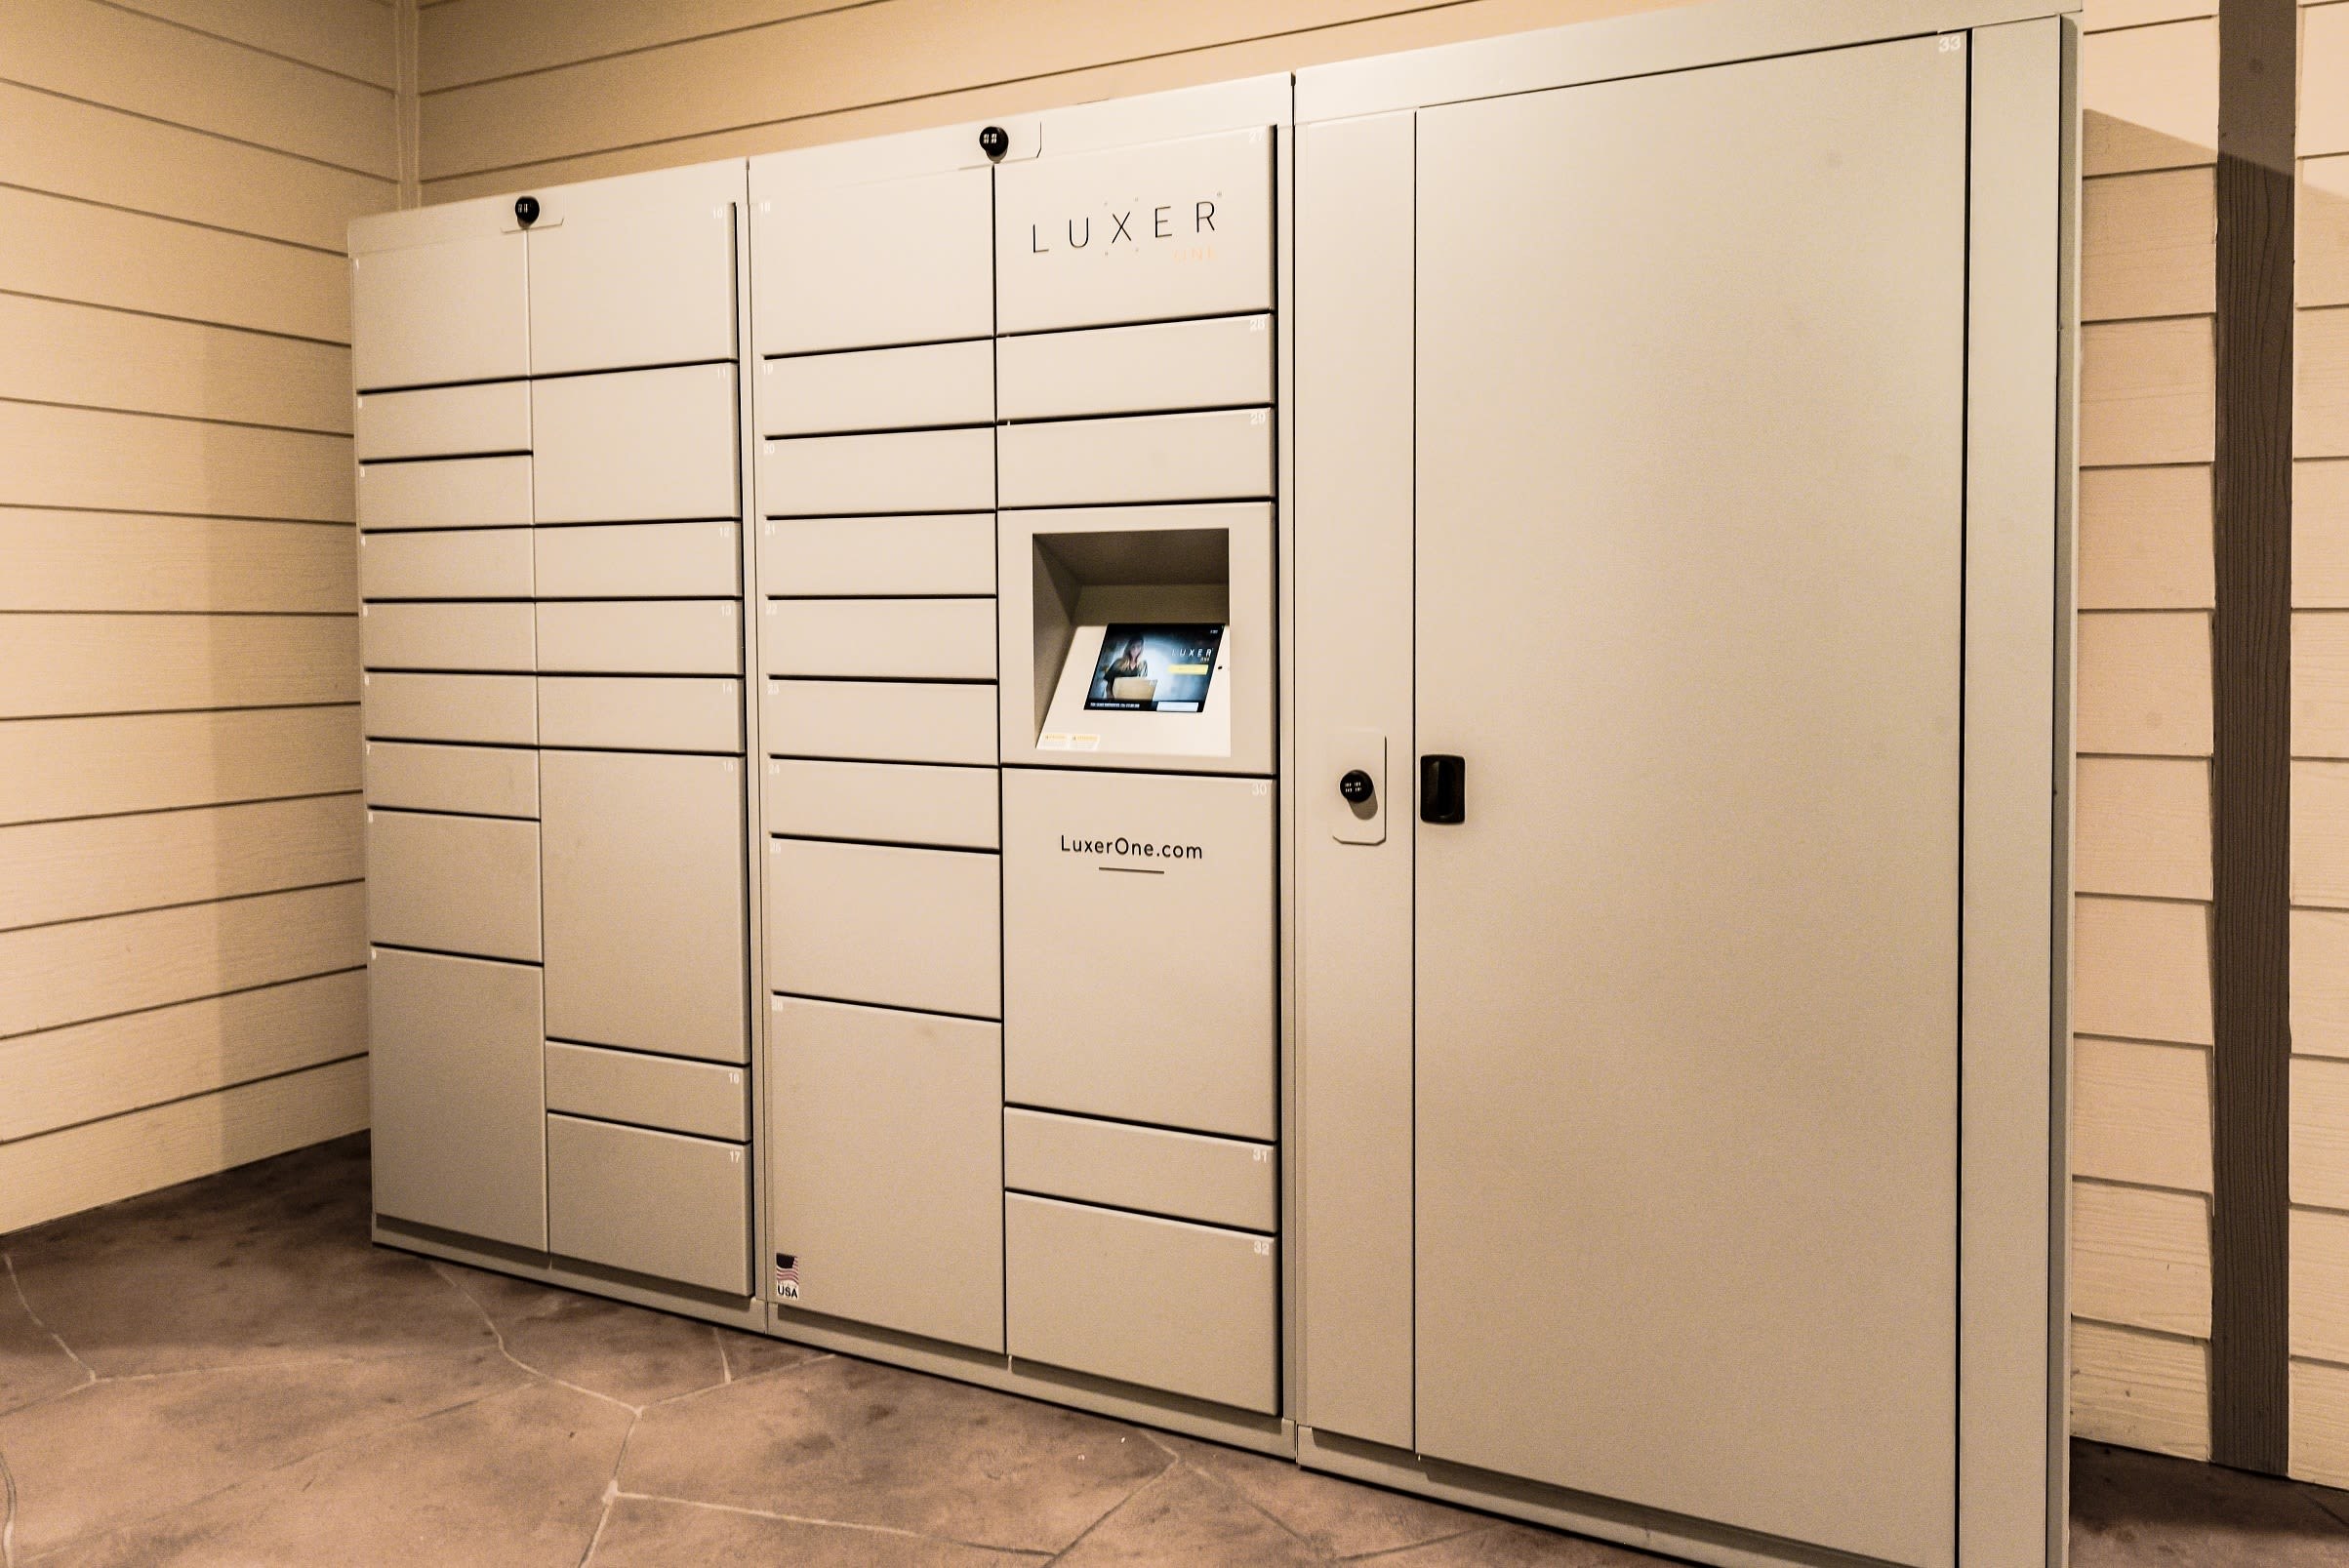 Storage lockers for residents at The Blvd in Irving, Texas